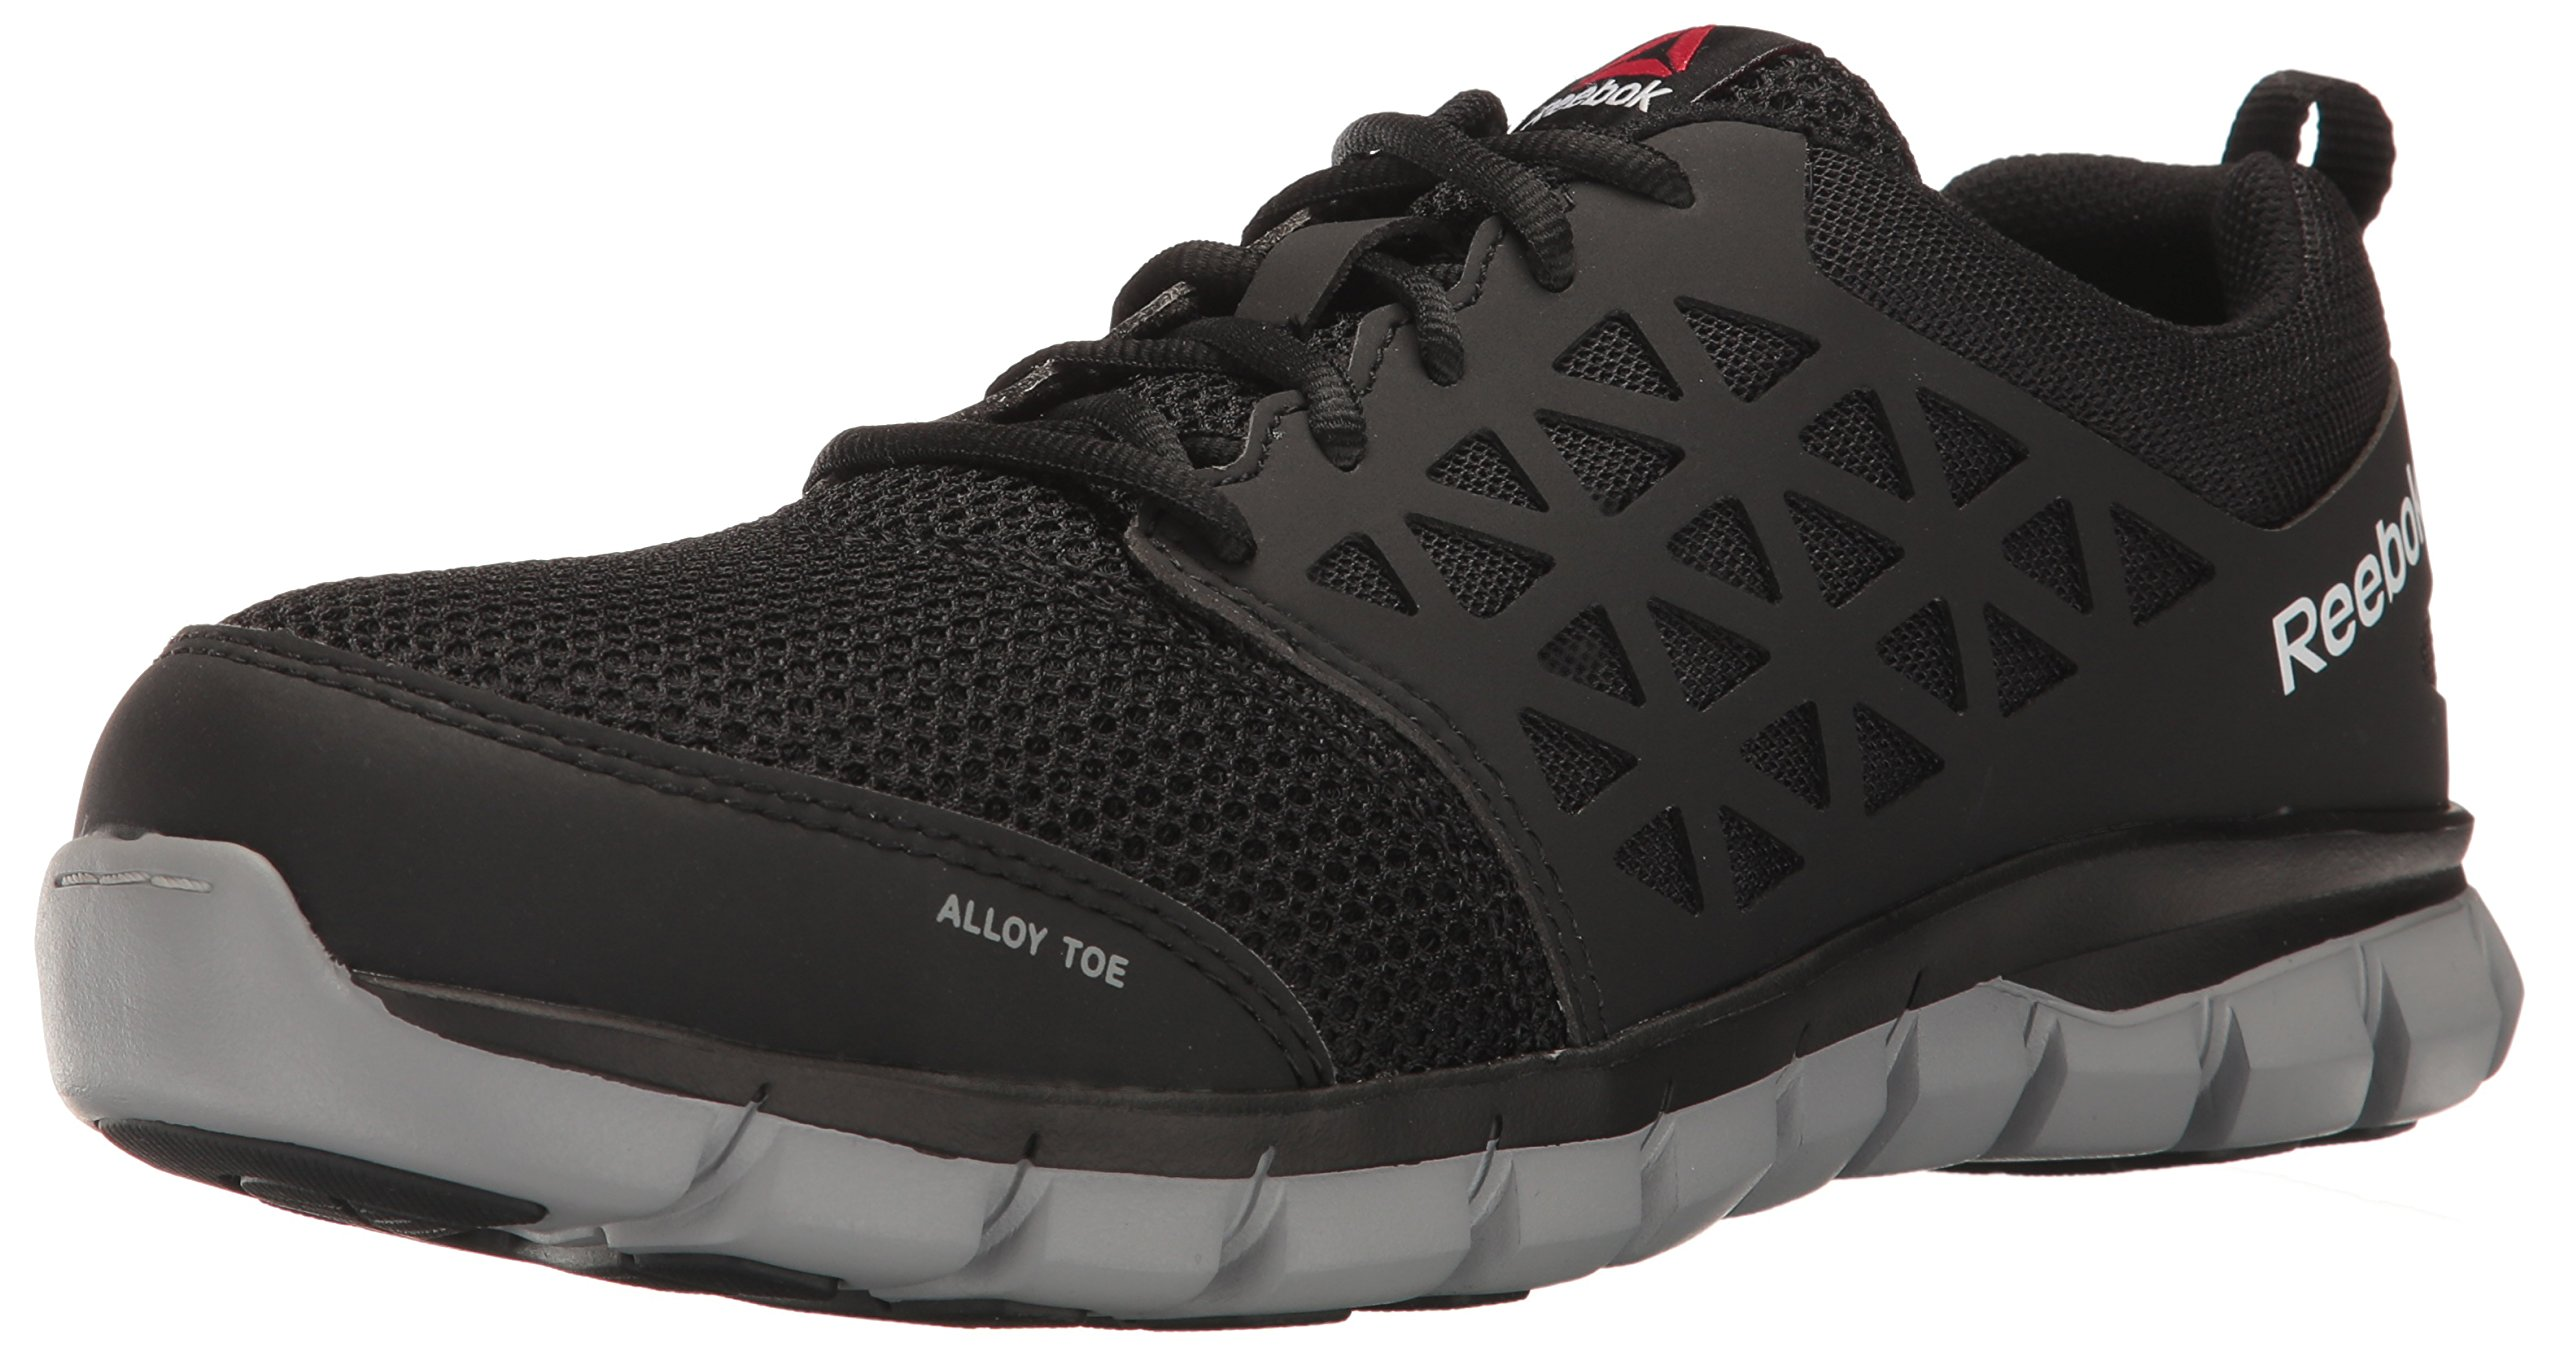 Reebok Work Men's Sublite Cushion Work RB4041 Industrial and Construction Shoe, Black, 13 M US by Reebok Work